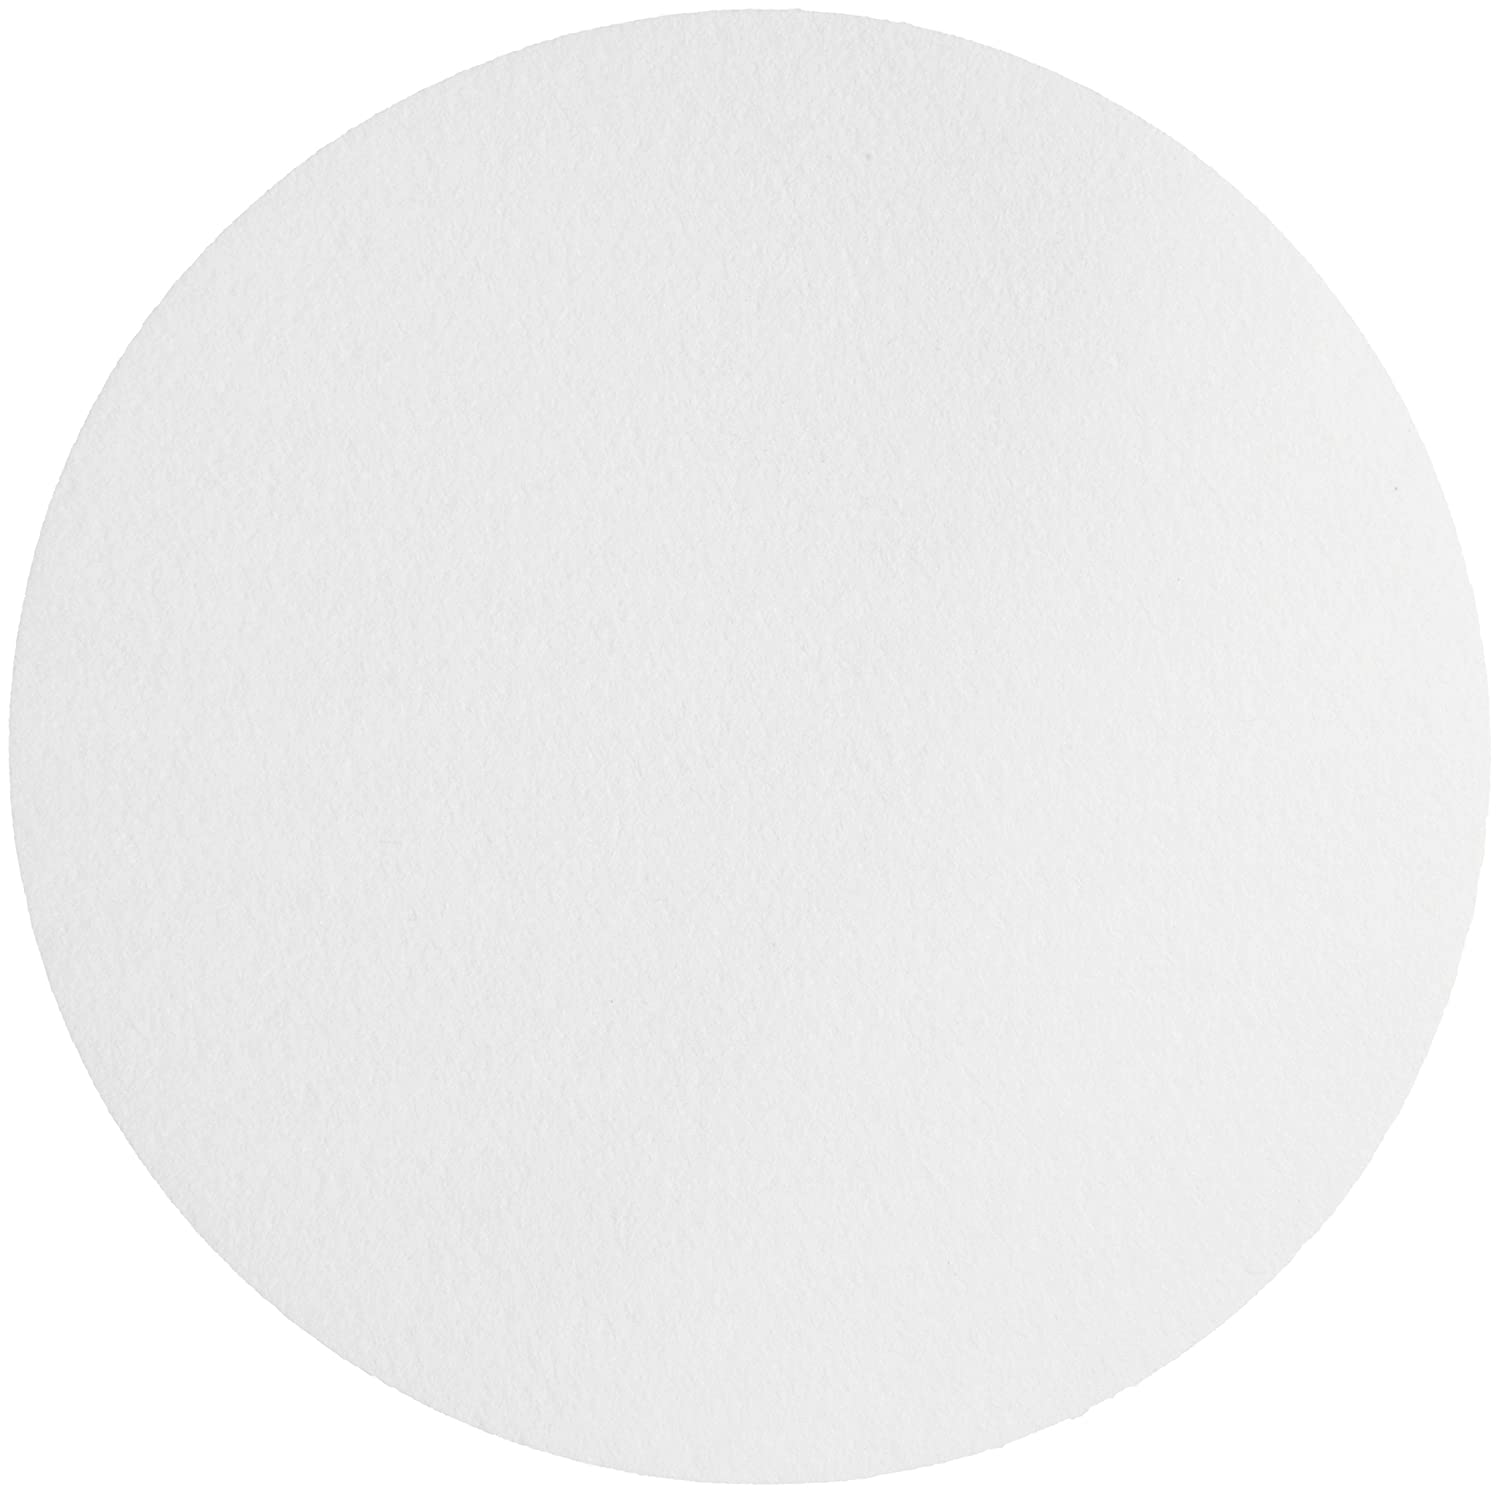 Whatman 4712N10PK 1004055 Grade 4 Qualitative Filter Paper 55 mm Thick and Max Volume 1621 ml//m Pack of 100